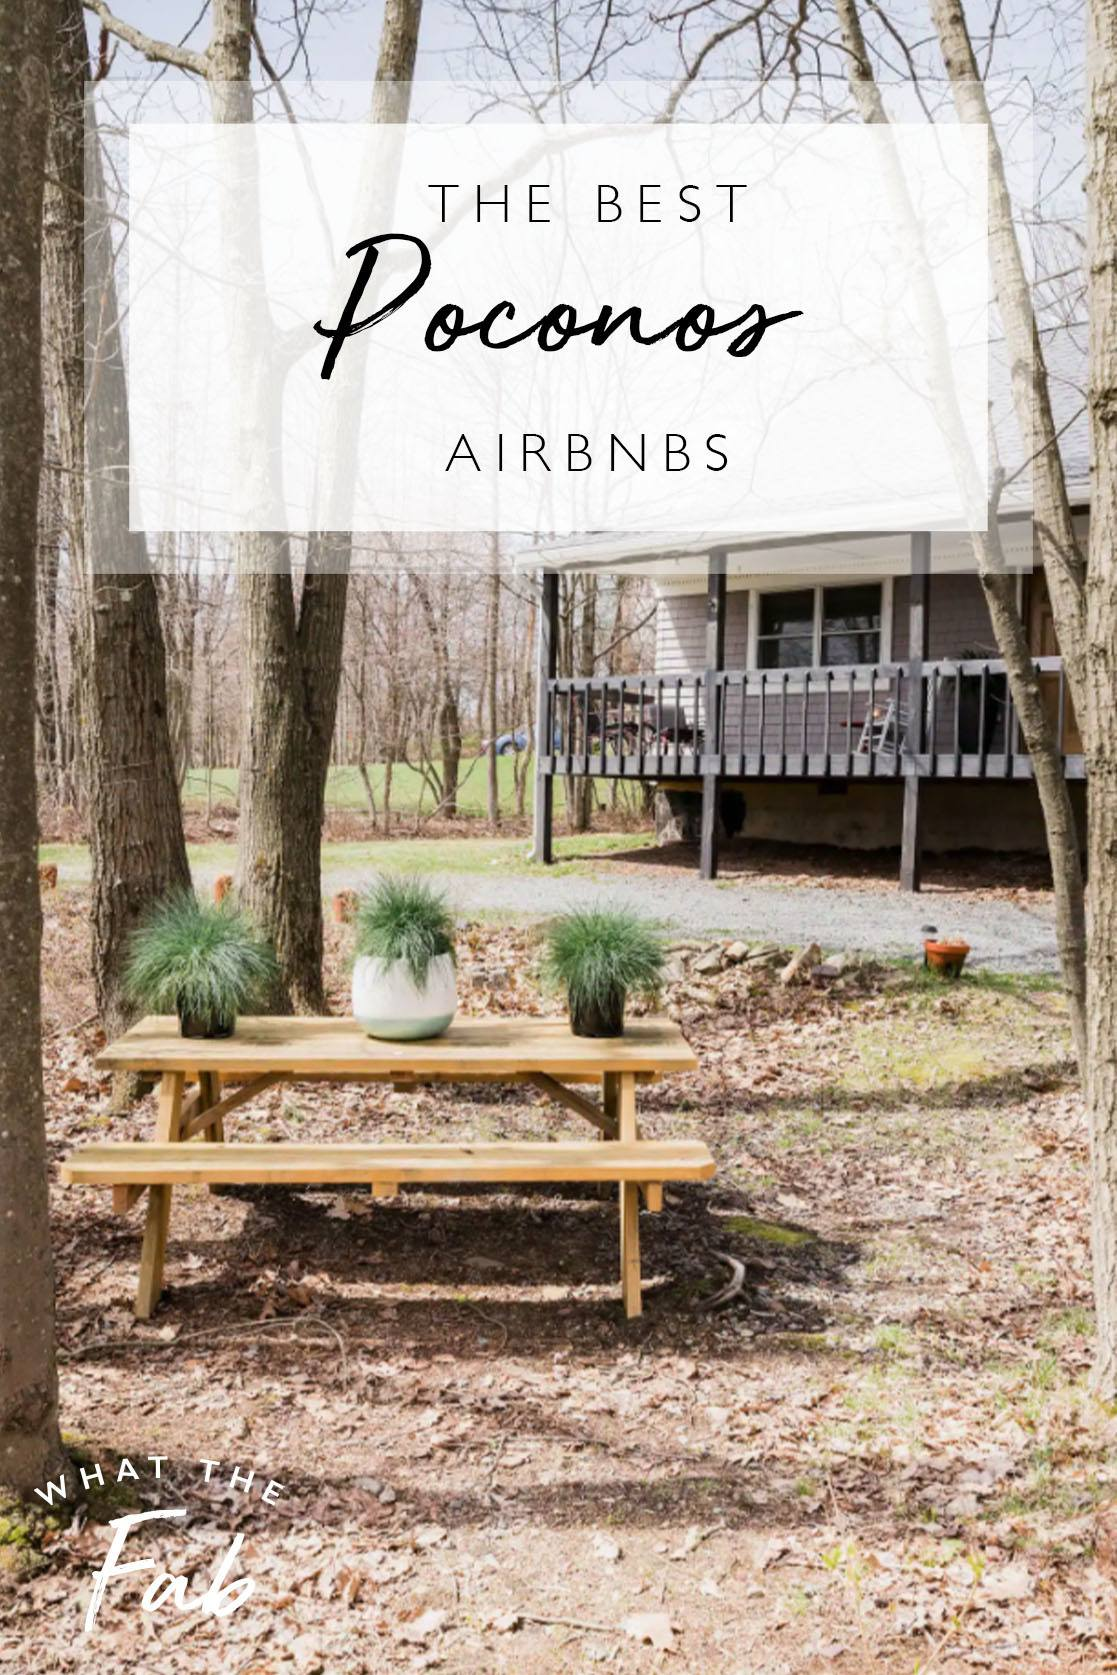 Poconos Airbnbs, by Travel Blogger What The Fab